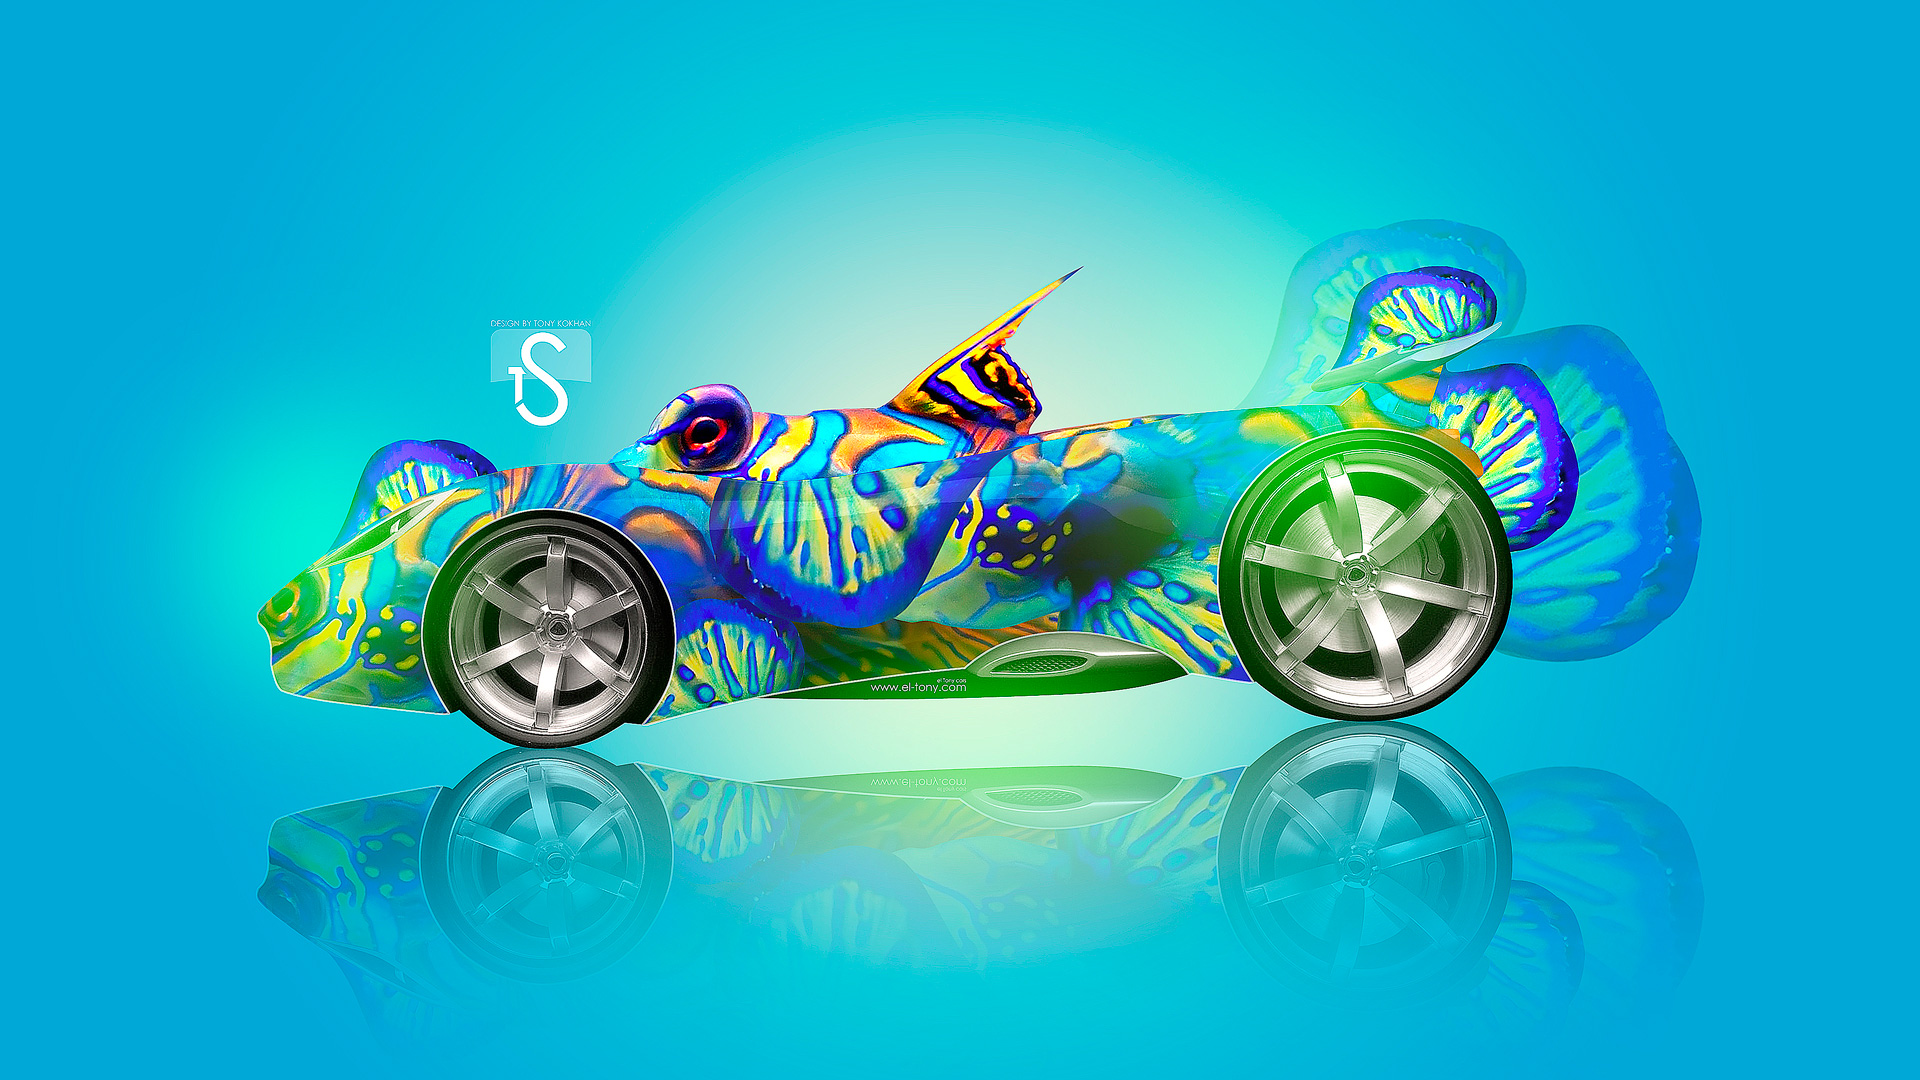 Genial Fantasy Fish Car 2013 HD Wallpapers Design By